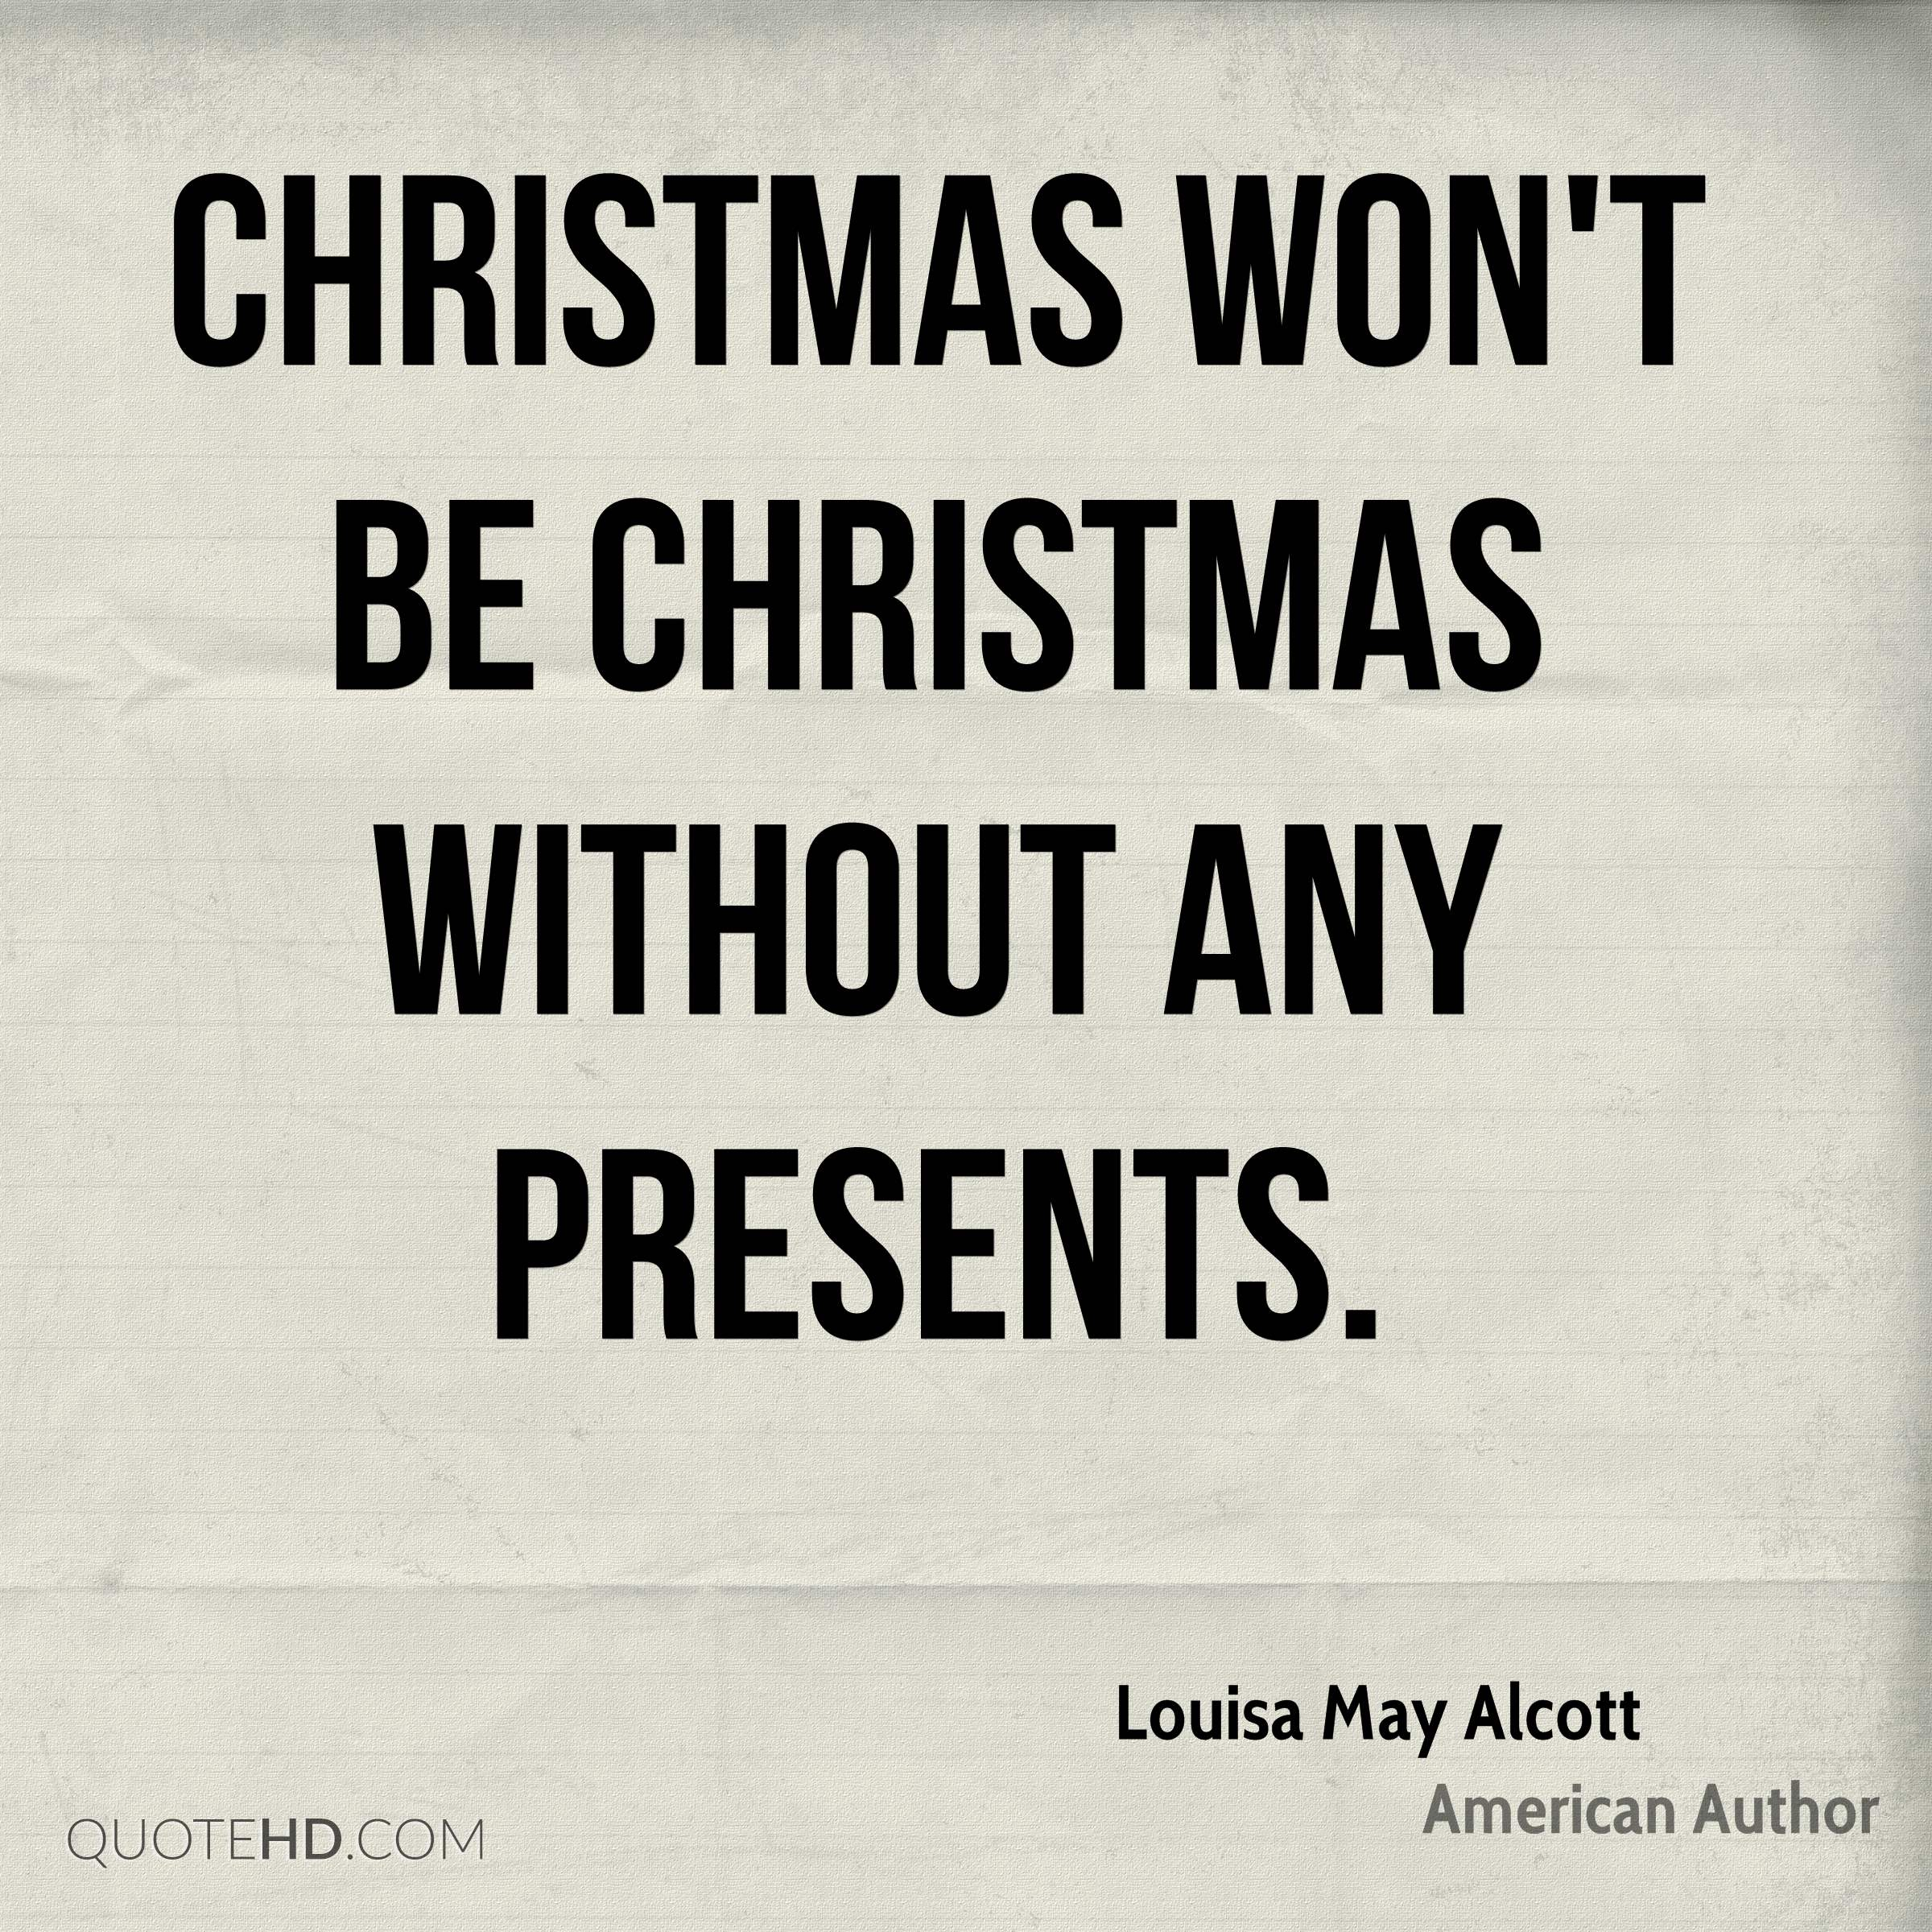 Christmas won't be Christmas without any presents.